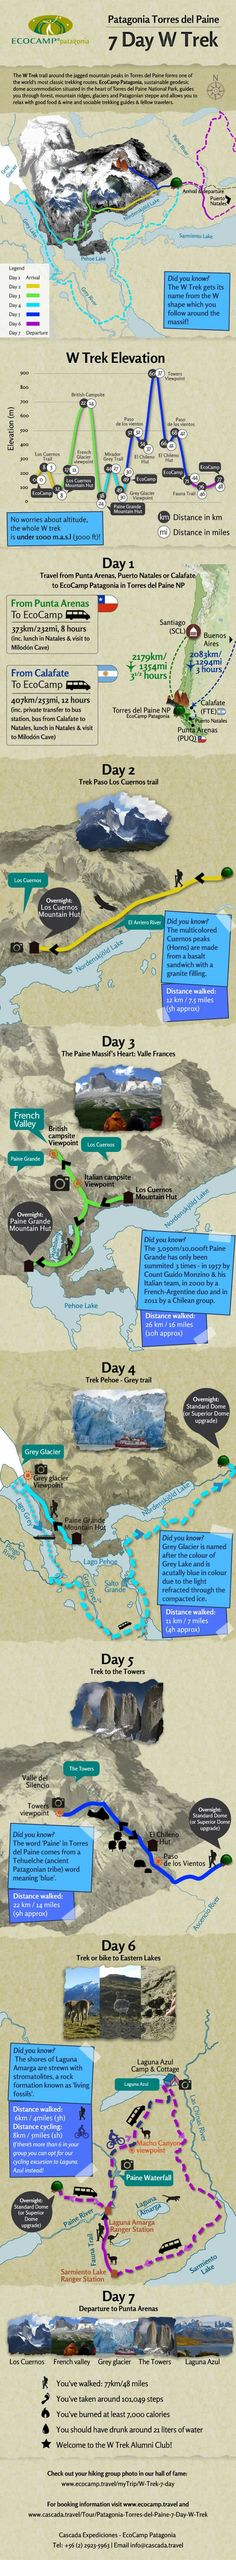 Patagonia Torres del Paine 7 Day W Trek Infographic.